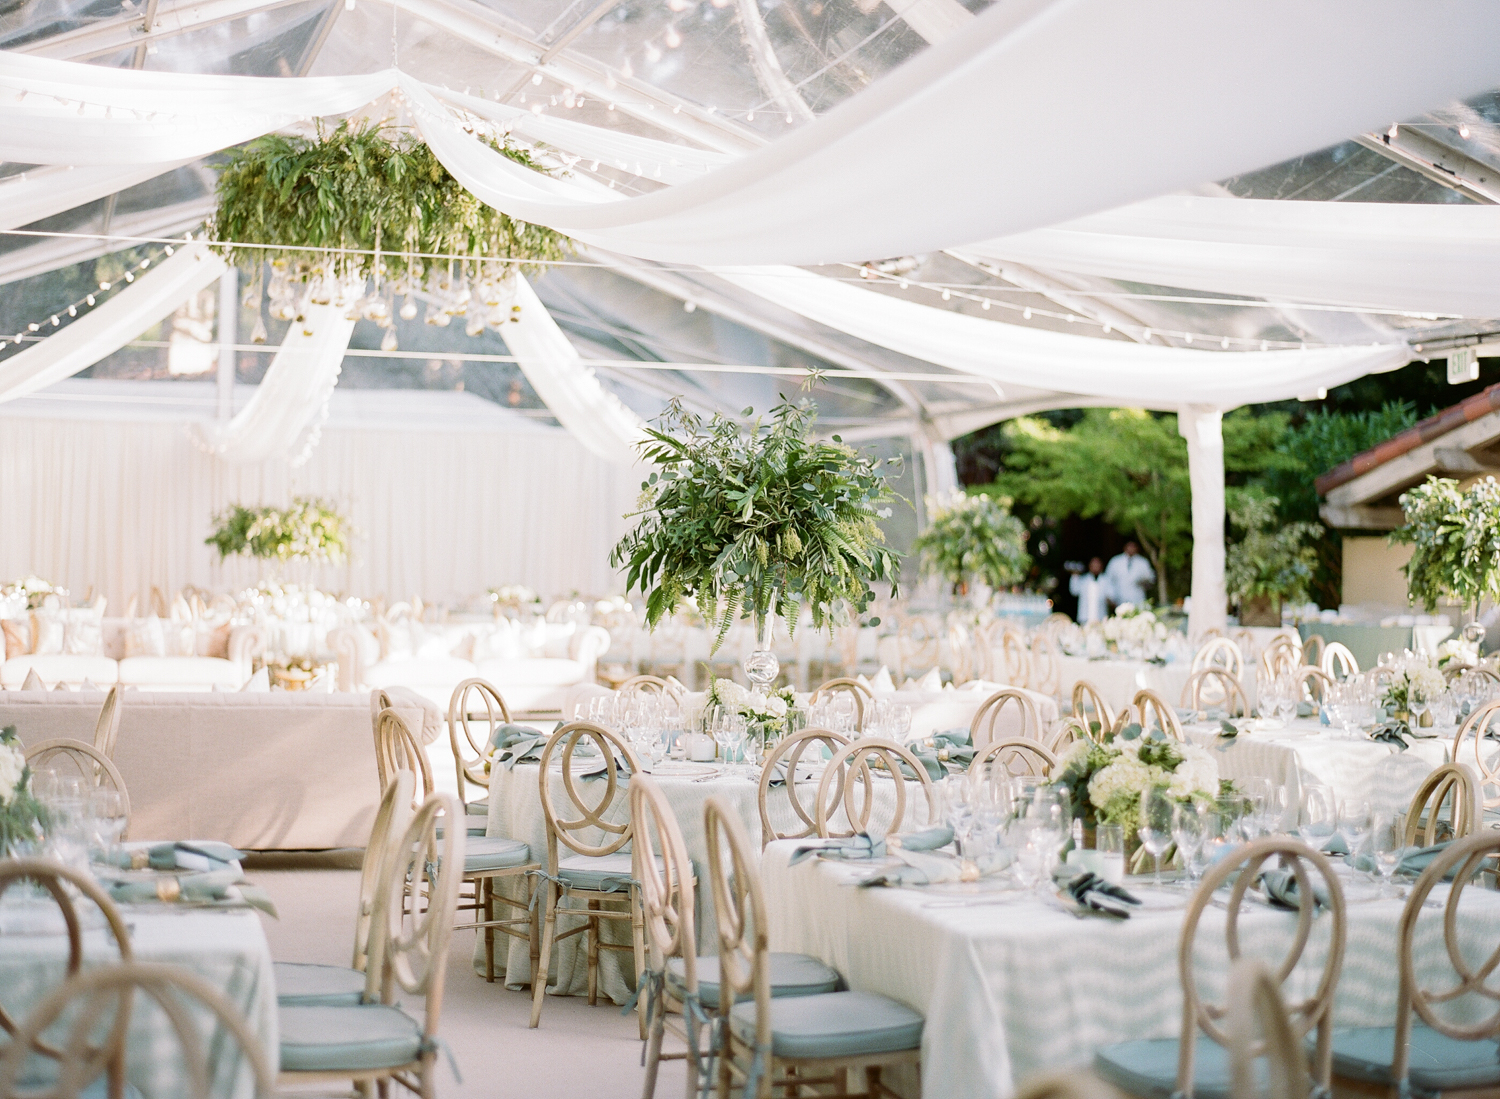 Awnings and string lights draped through the reception tent; Sylvie Gil Photography